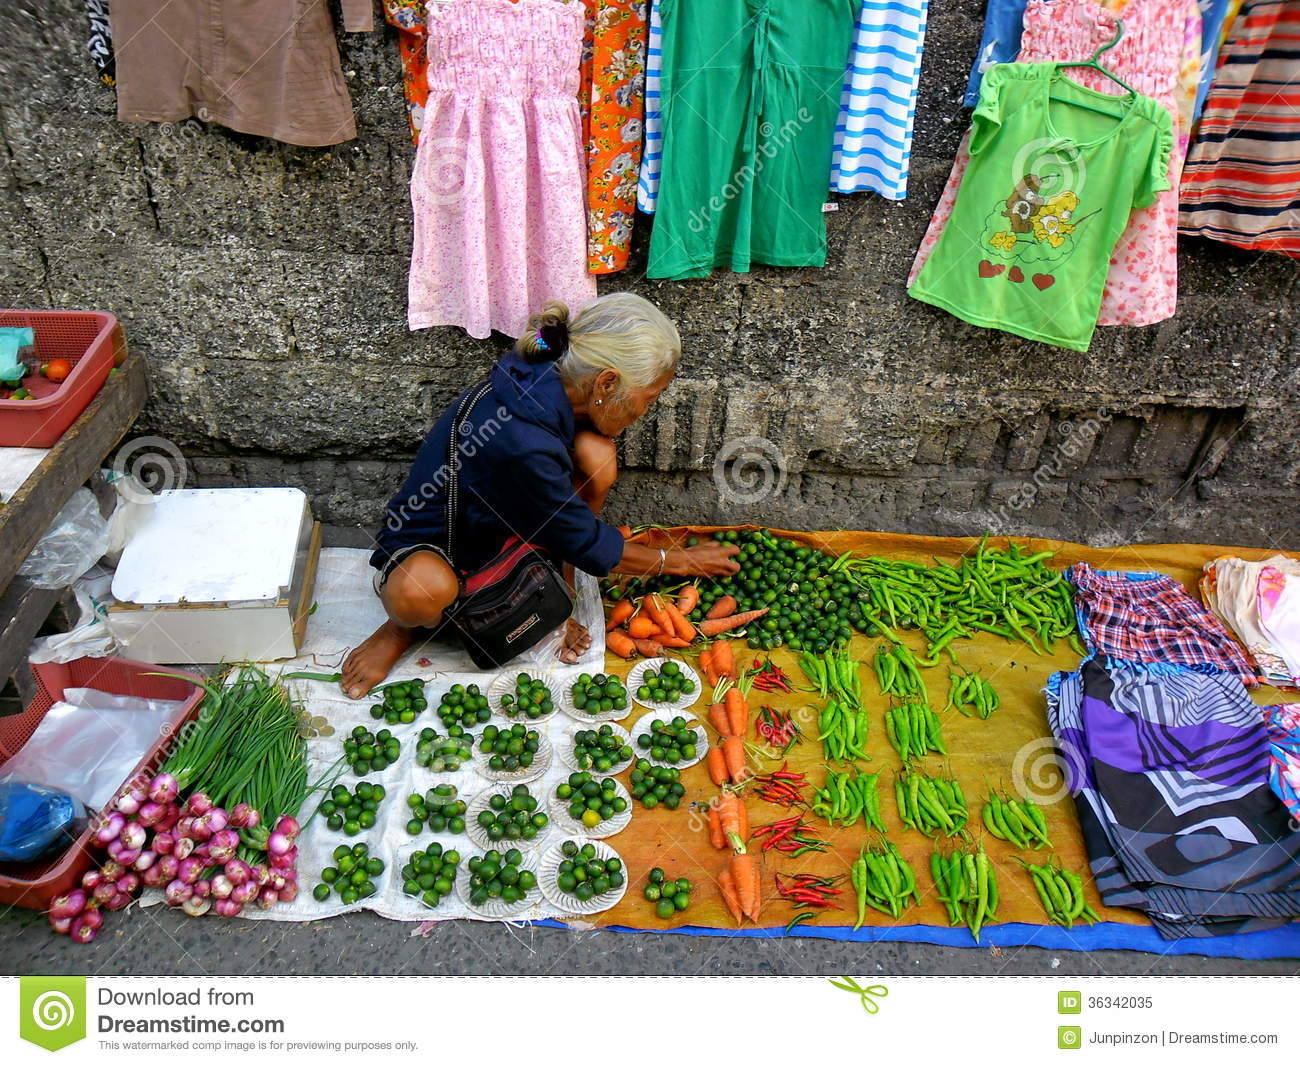 Cainta Philippines  City pictures : ... vendor in a Market in Cainta, Rizal, Philippines, Asia Editorial Image